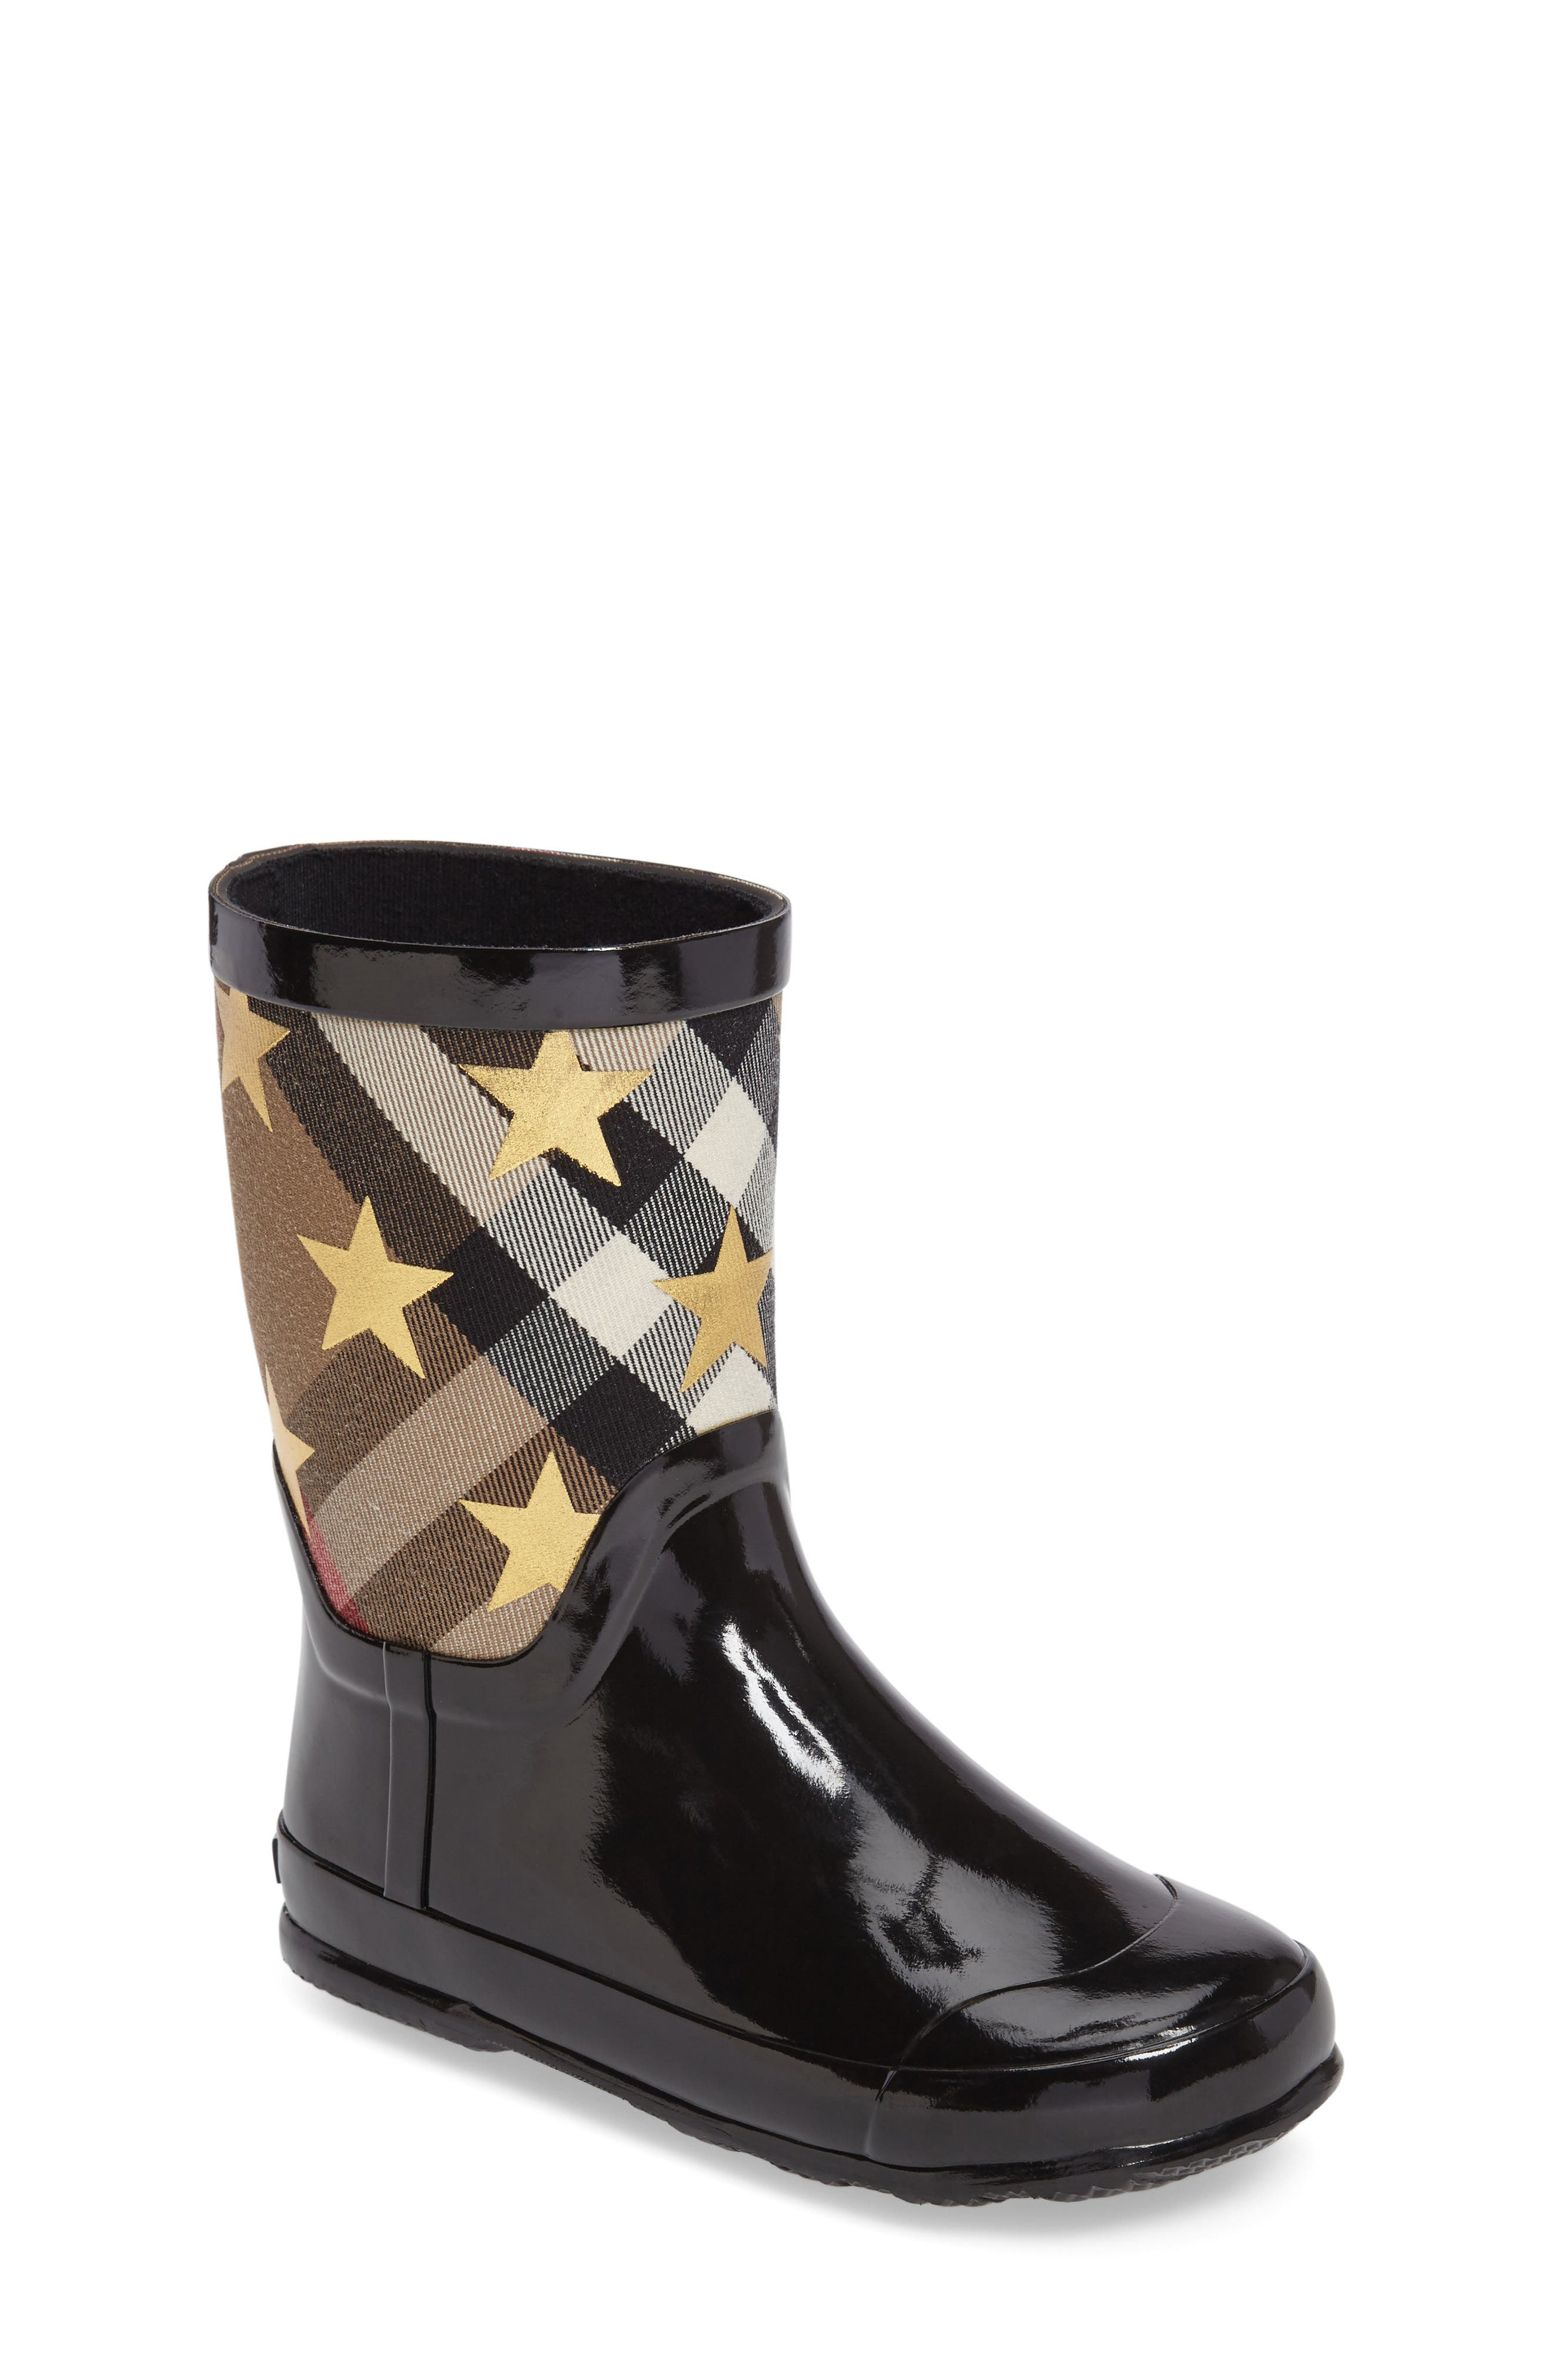 Ranmoor Star Rain Boot,                         Main,                         color, 001